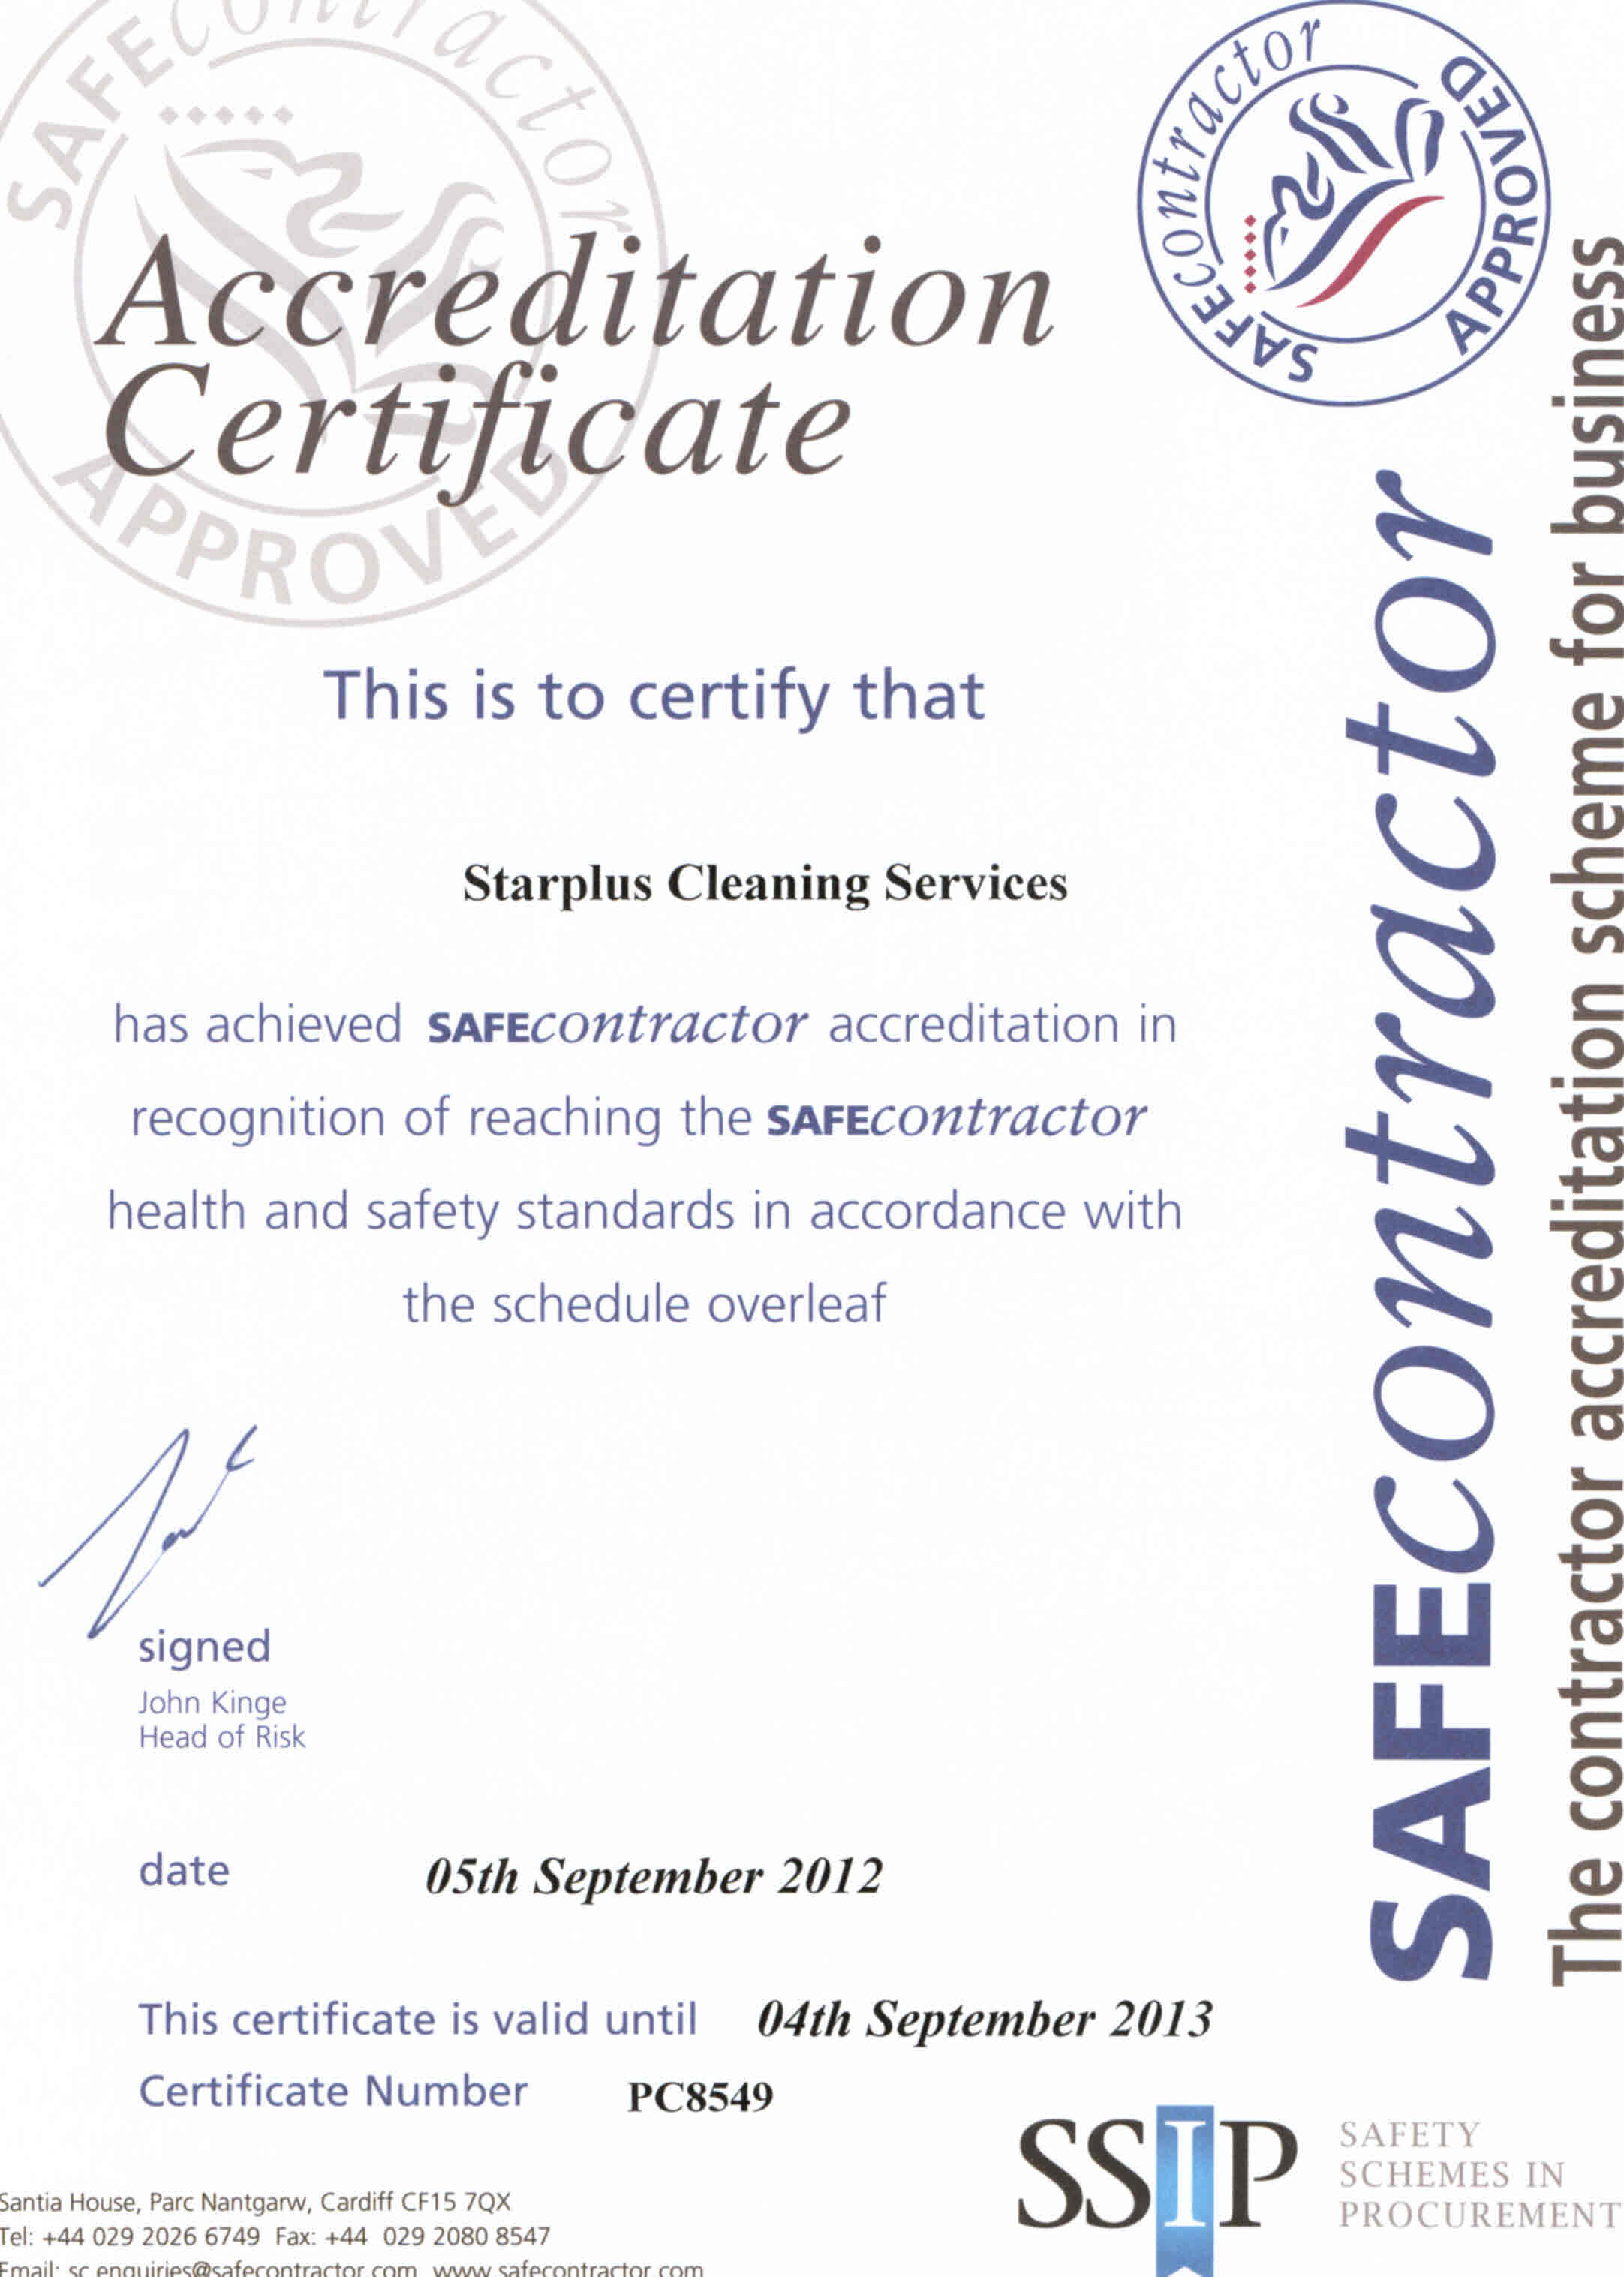 We are please to announce that we have received our renewal accreditation with Safe Contractor for another year!